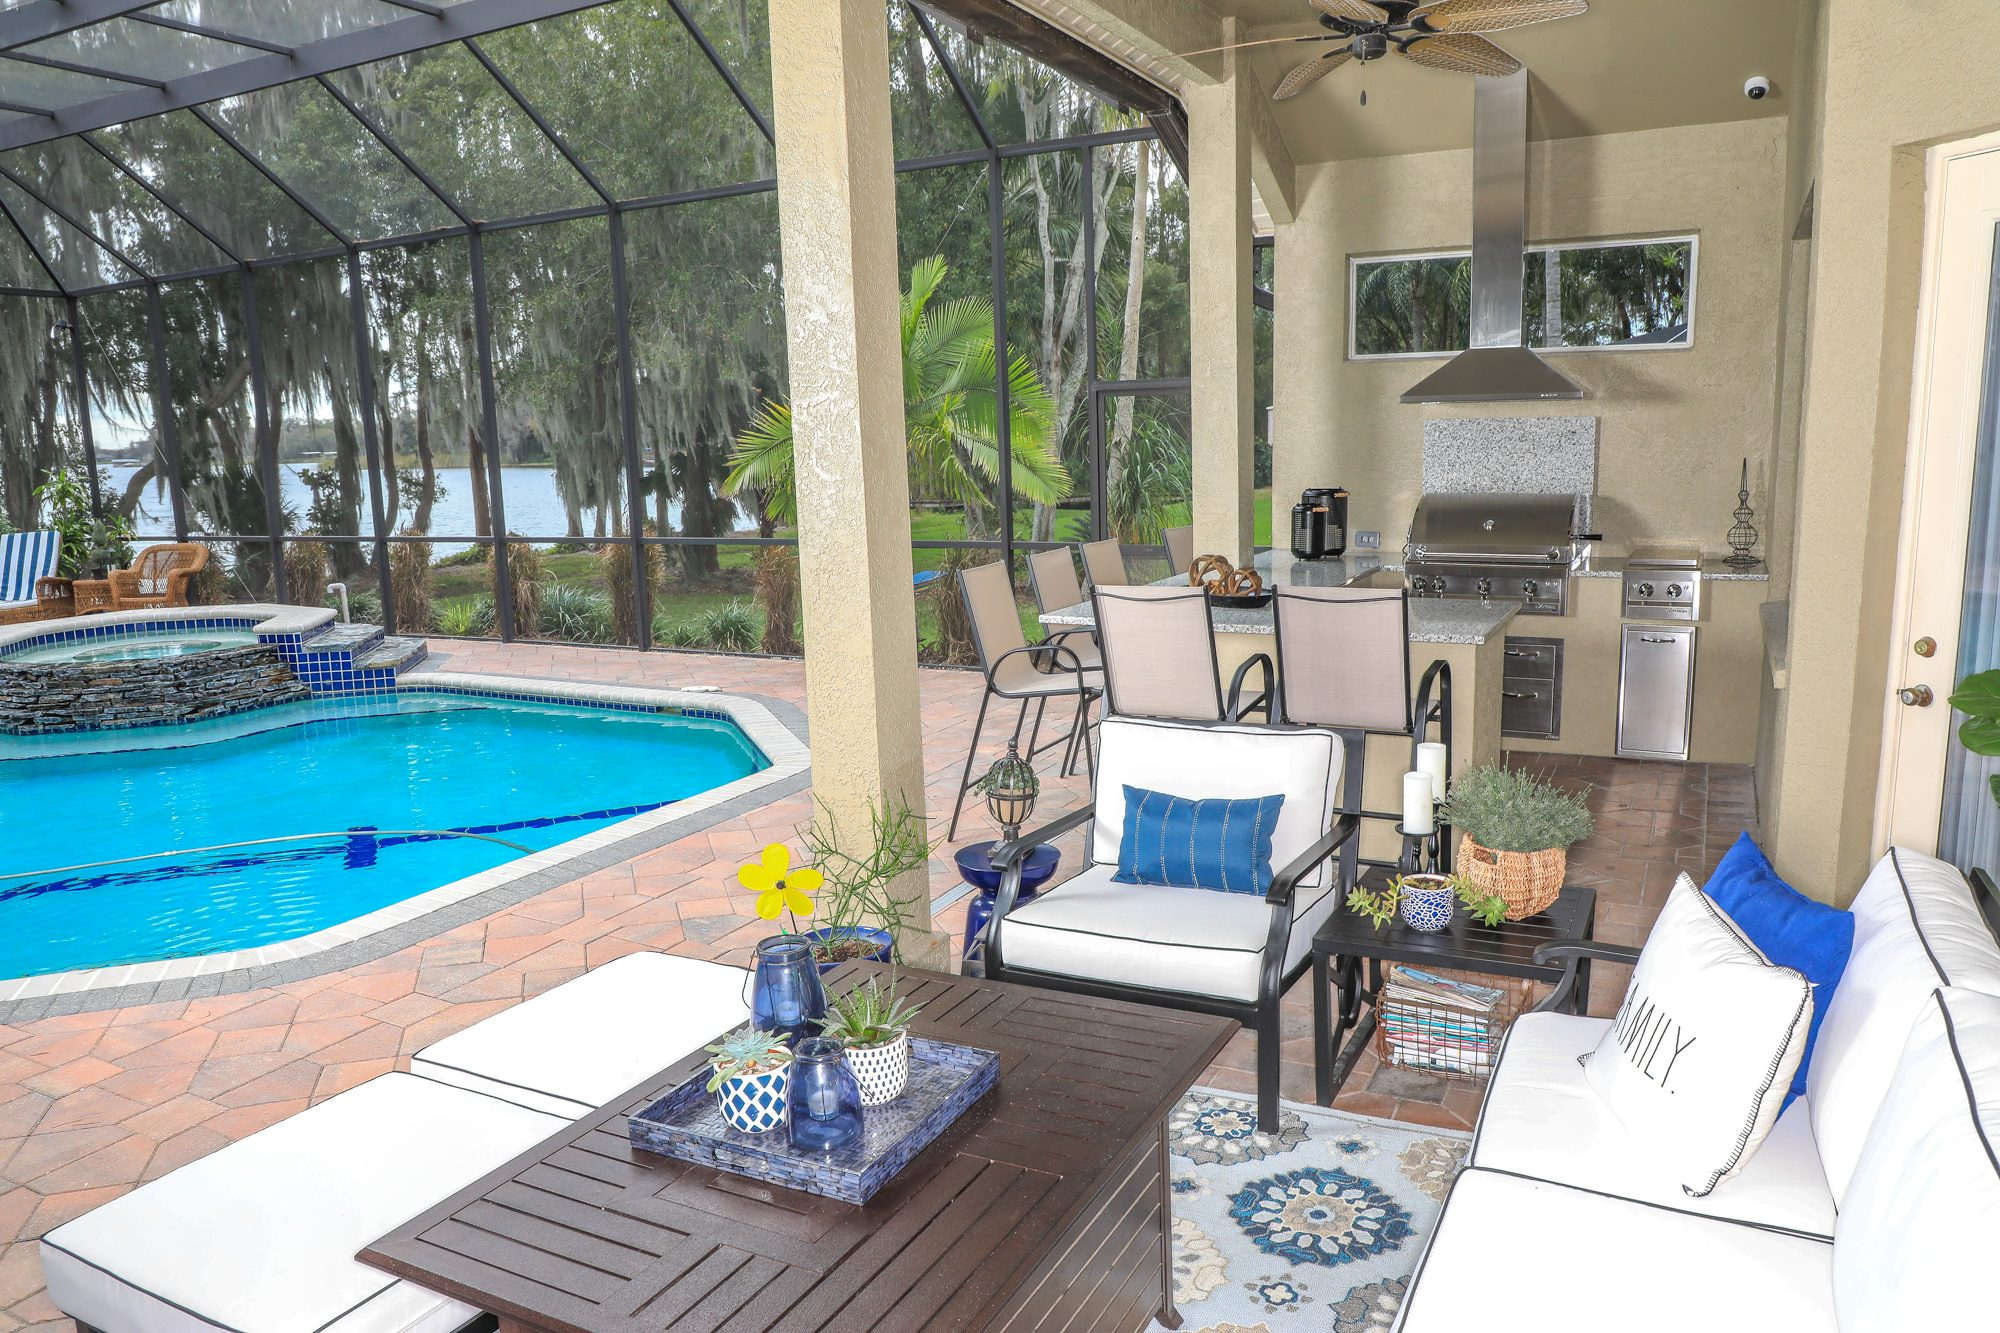 Outdoor Kitchen And Bar Seating Area On Pool Patio